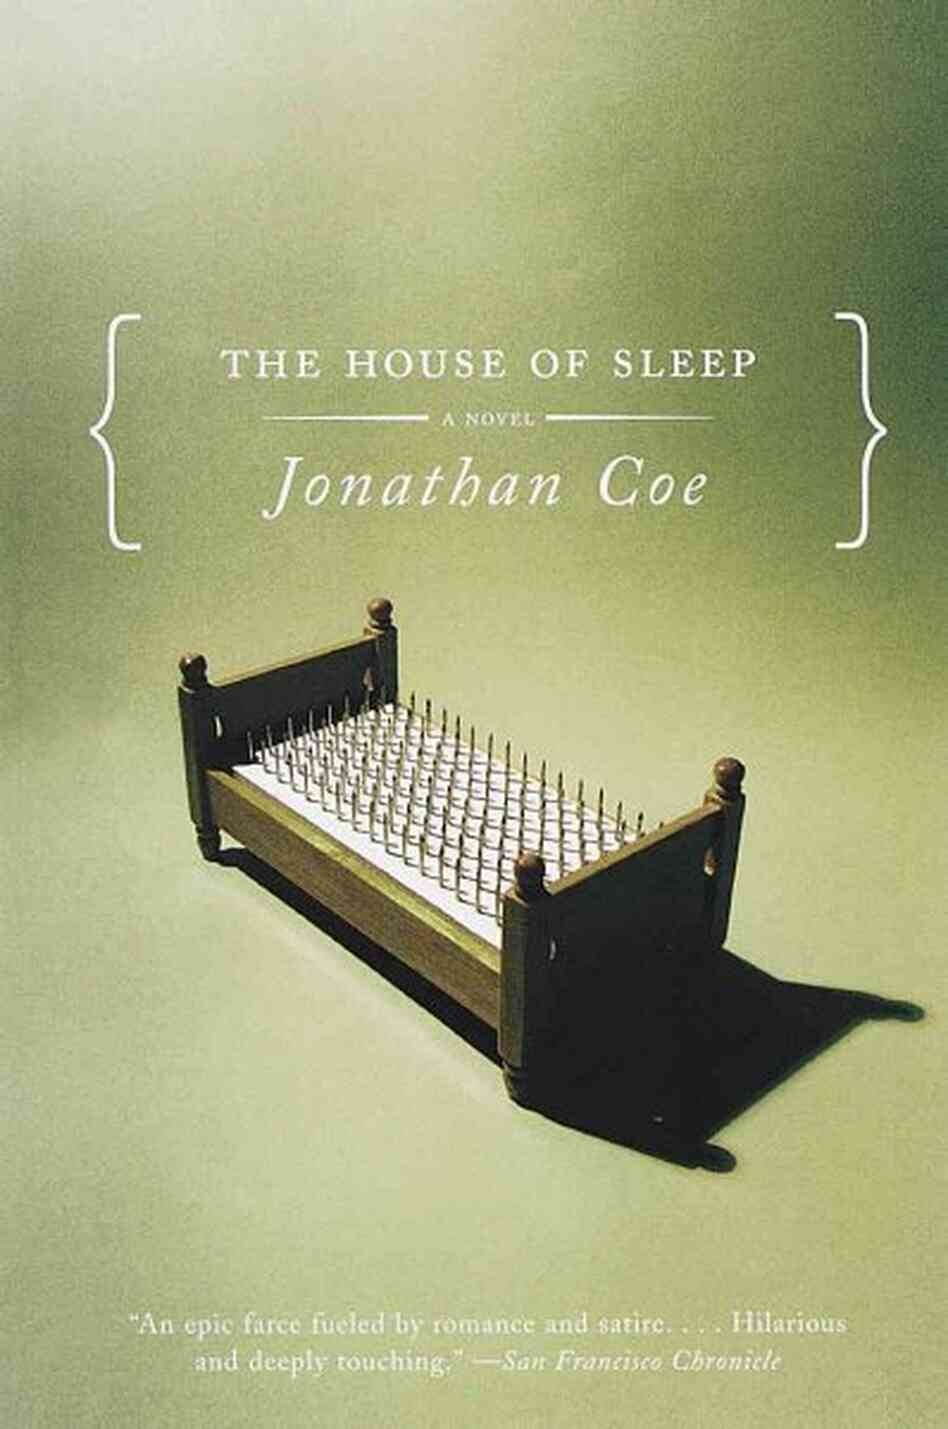 The House of Sleep